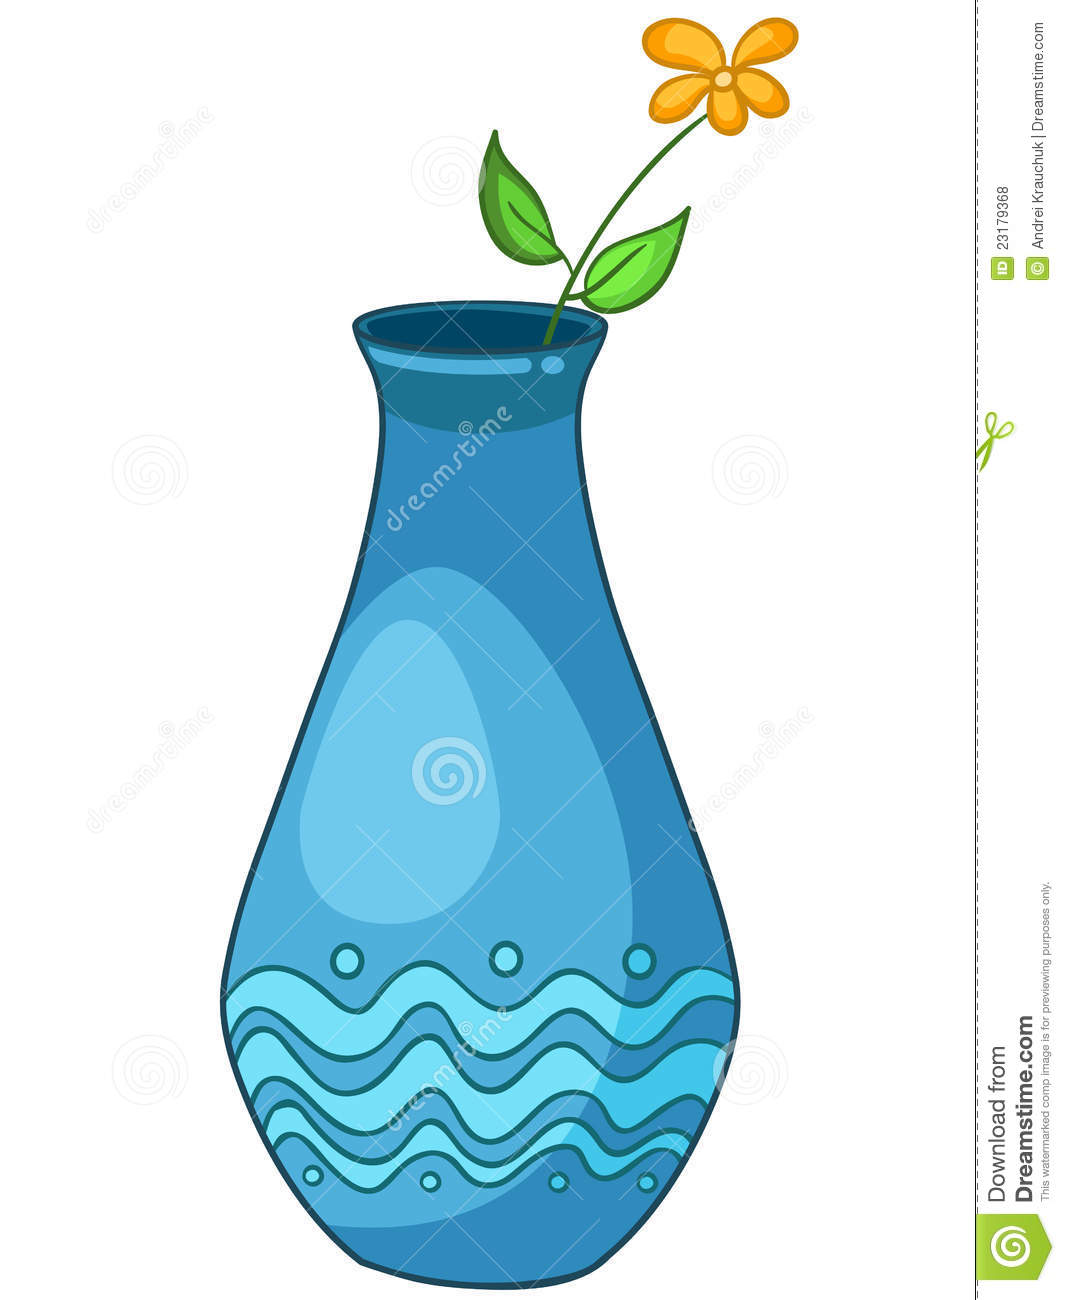 Cartoon home vase royalty free stock photos image 23179368